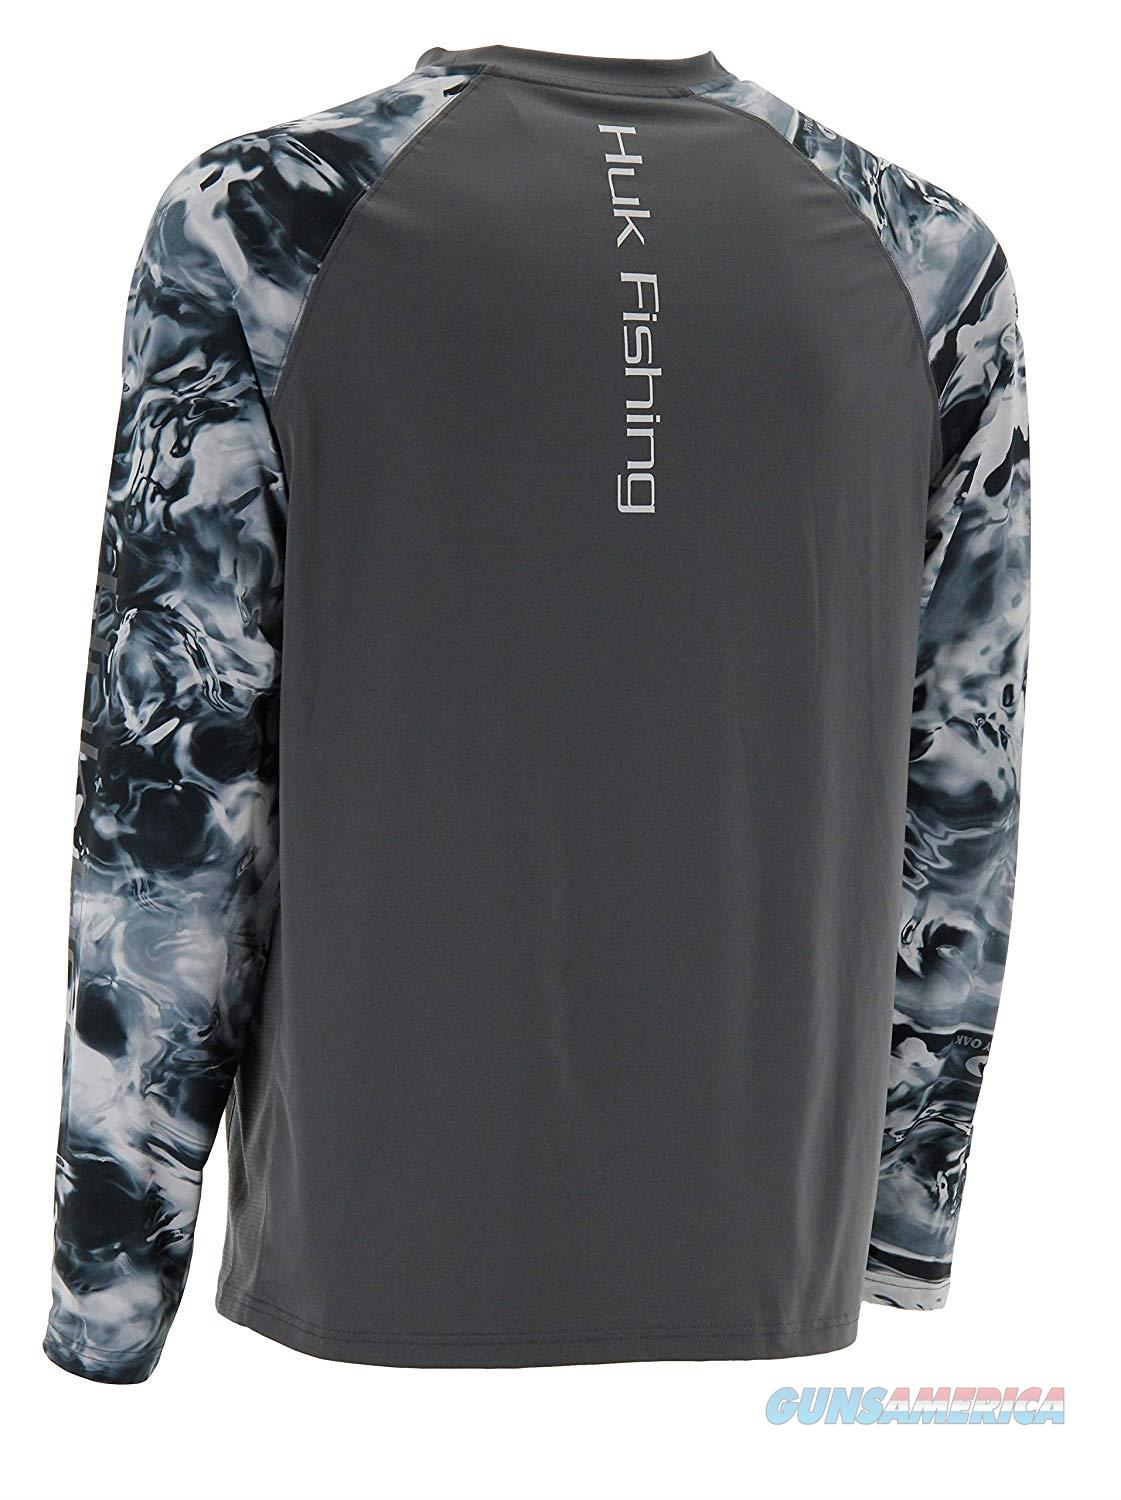 Huk Camo Vented LS LG Iron  Non-Guns > Hunting Clothing and Equipment > Clothing > Shirts